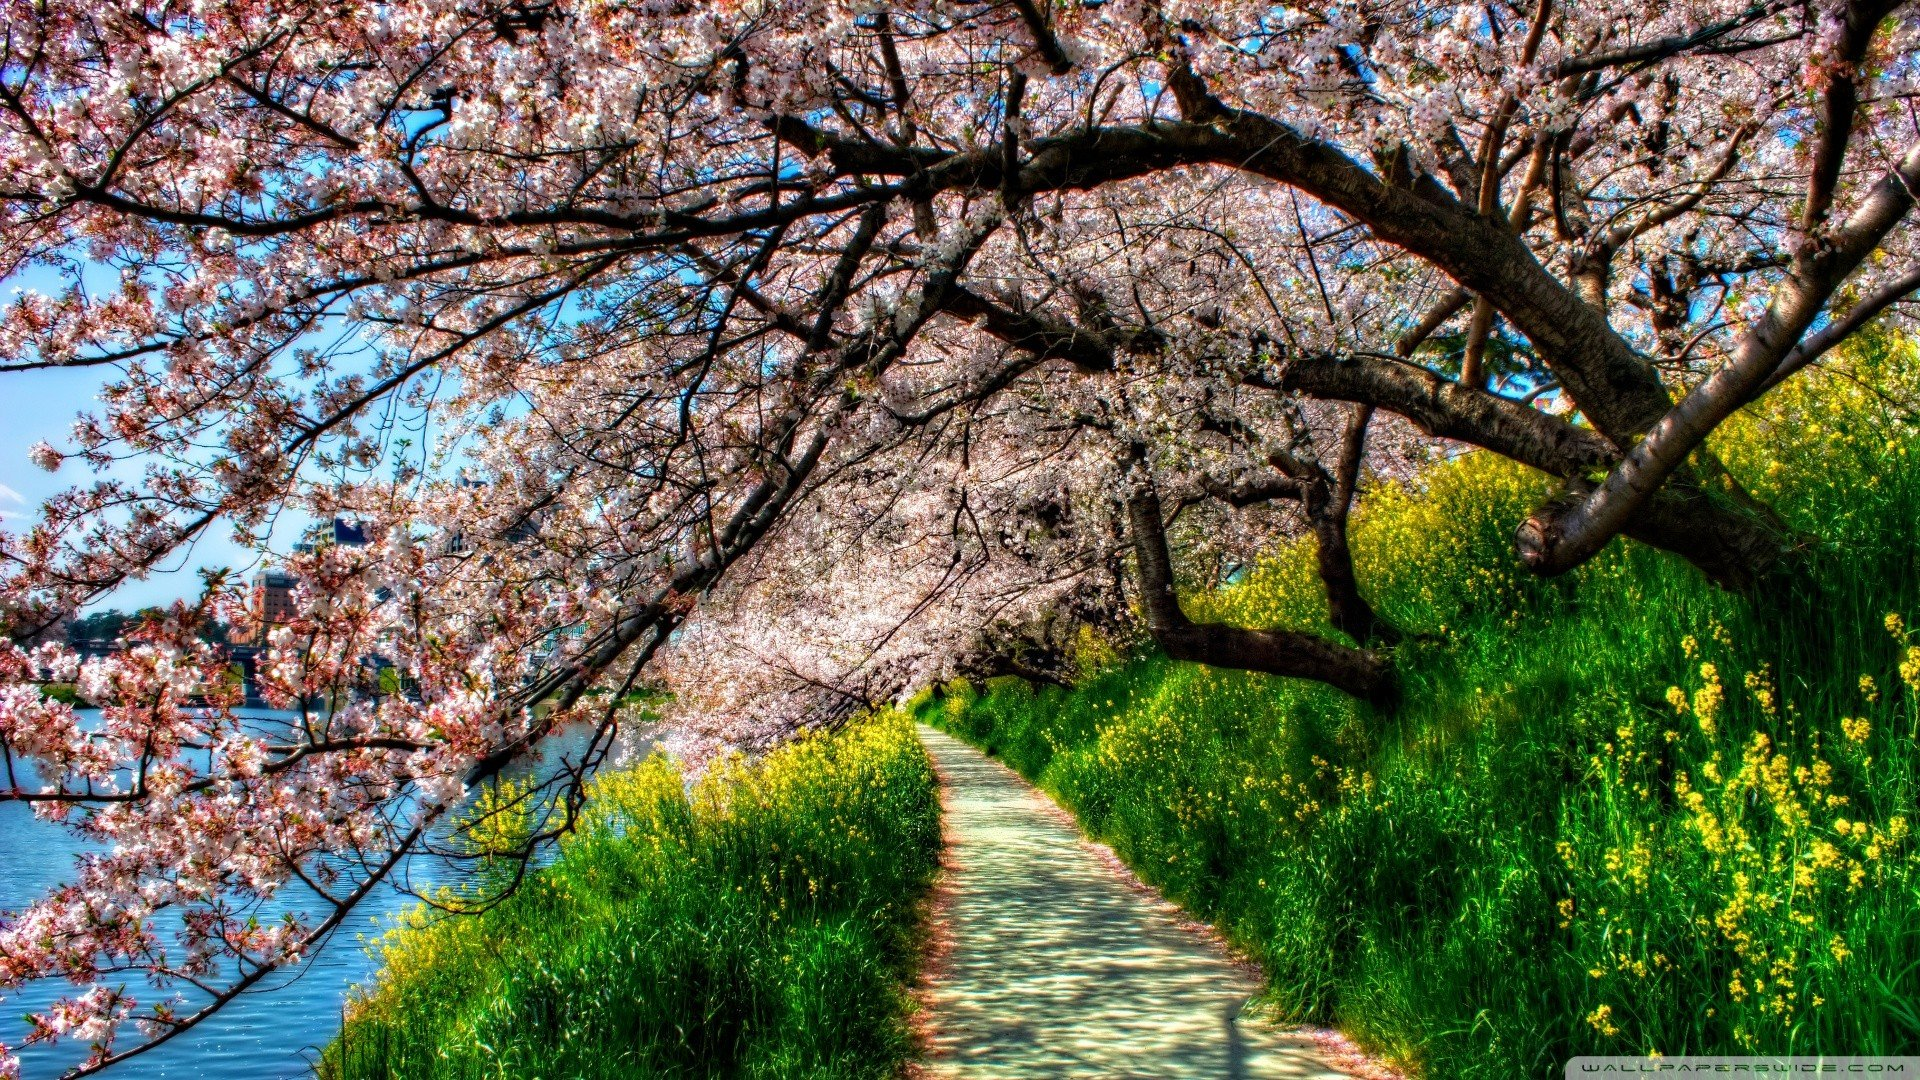 Nature Trees Flowers Spring Flowered Trees Wallpaper 1920x1080